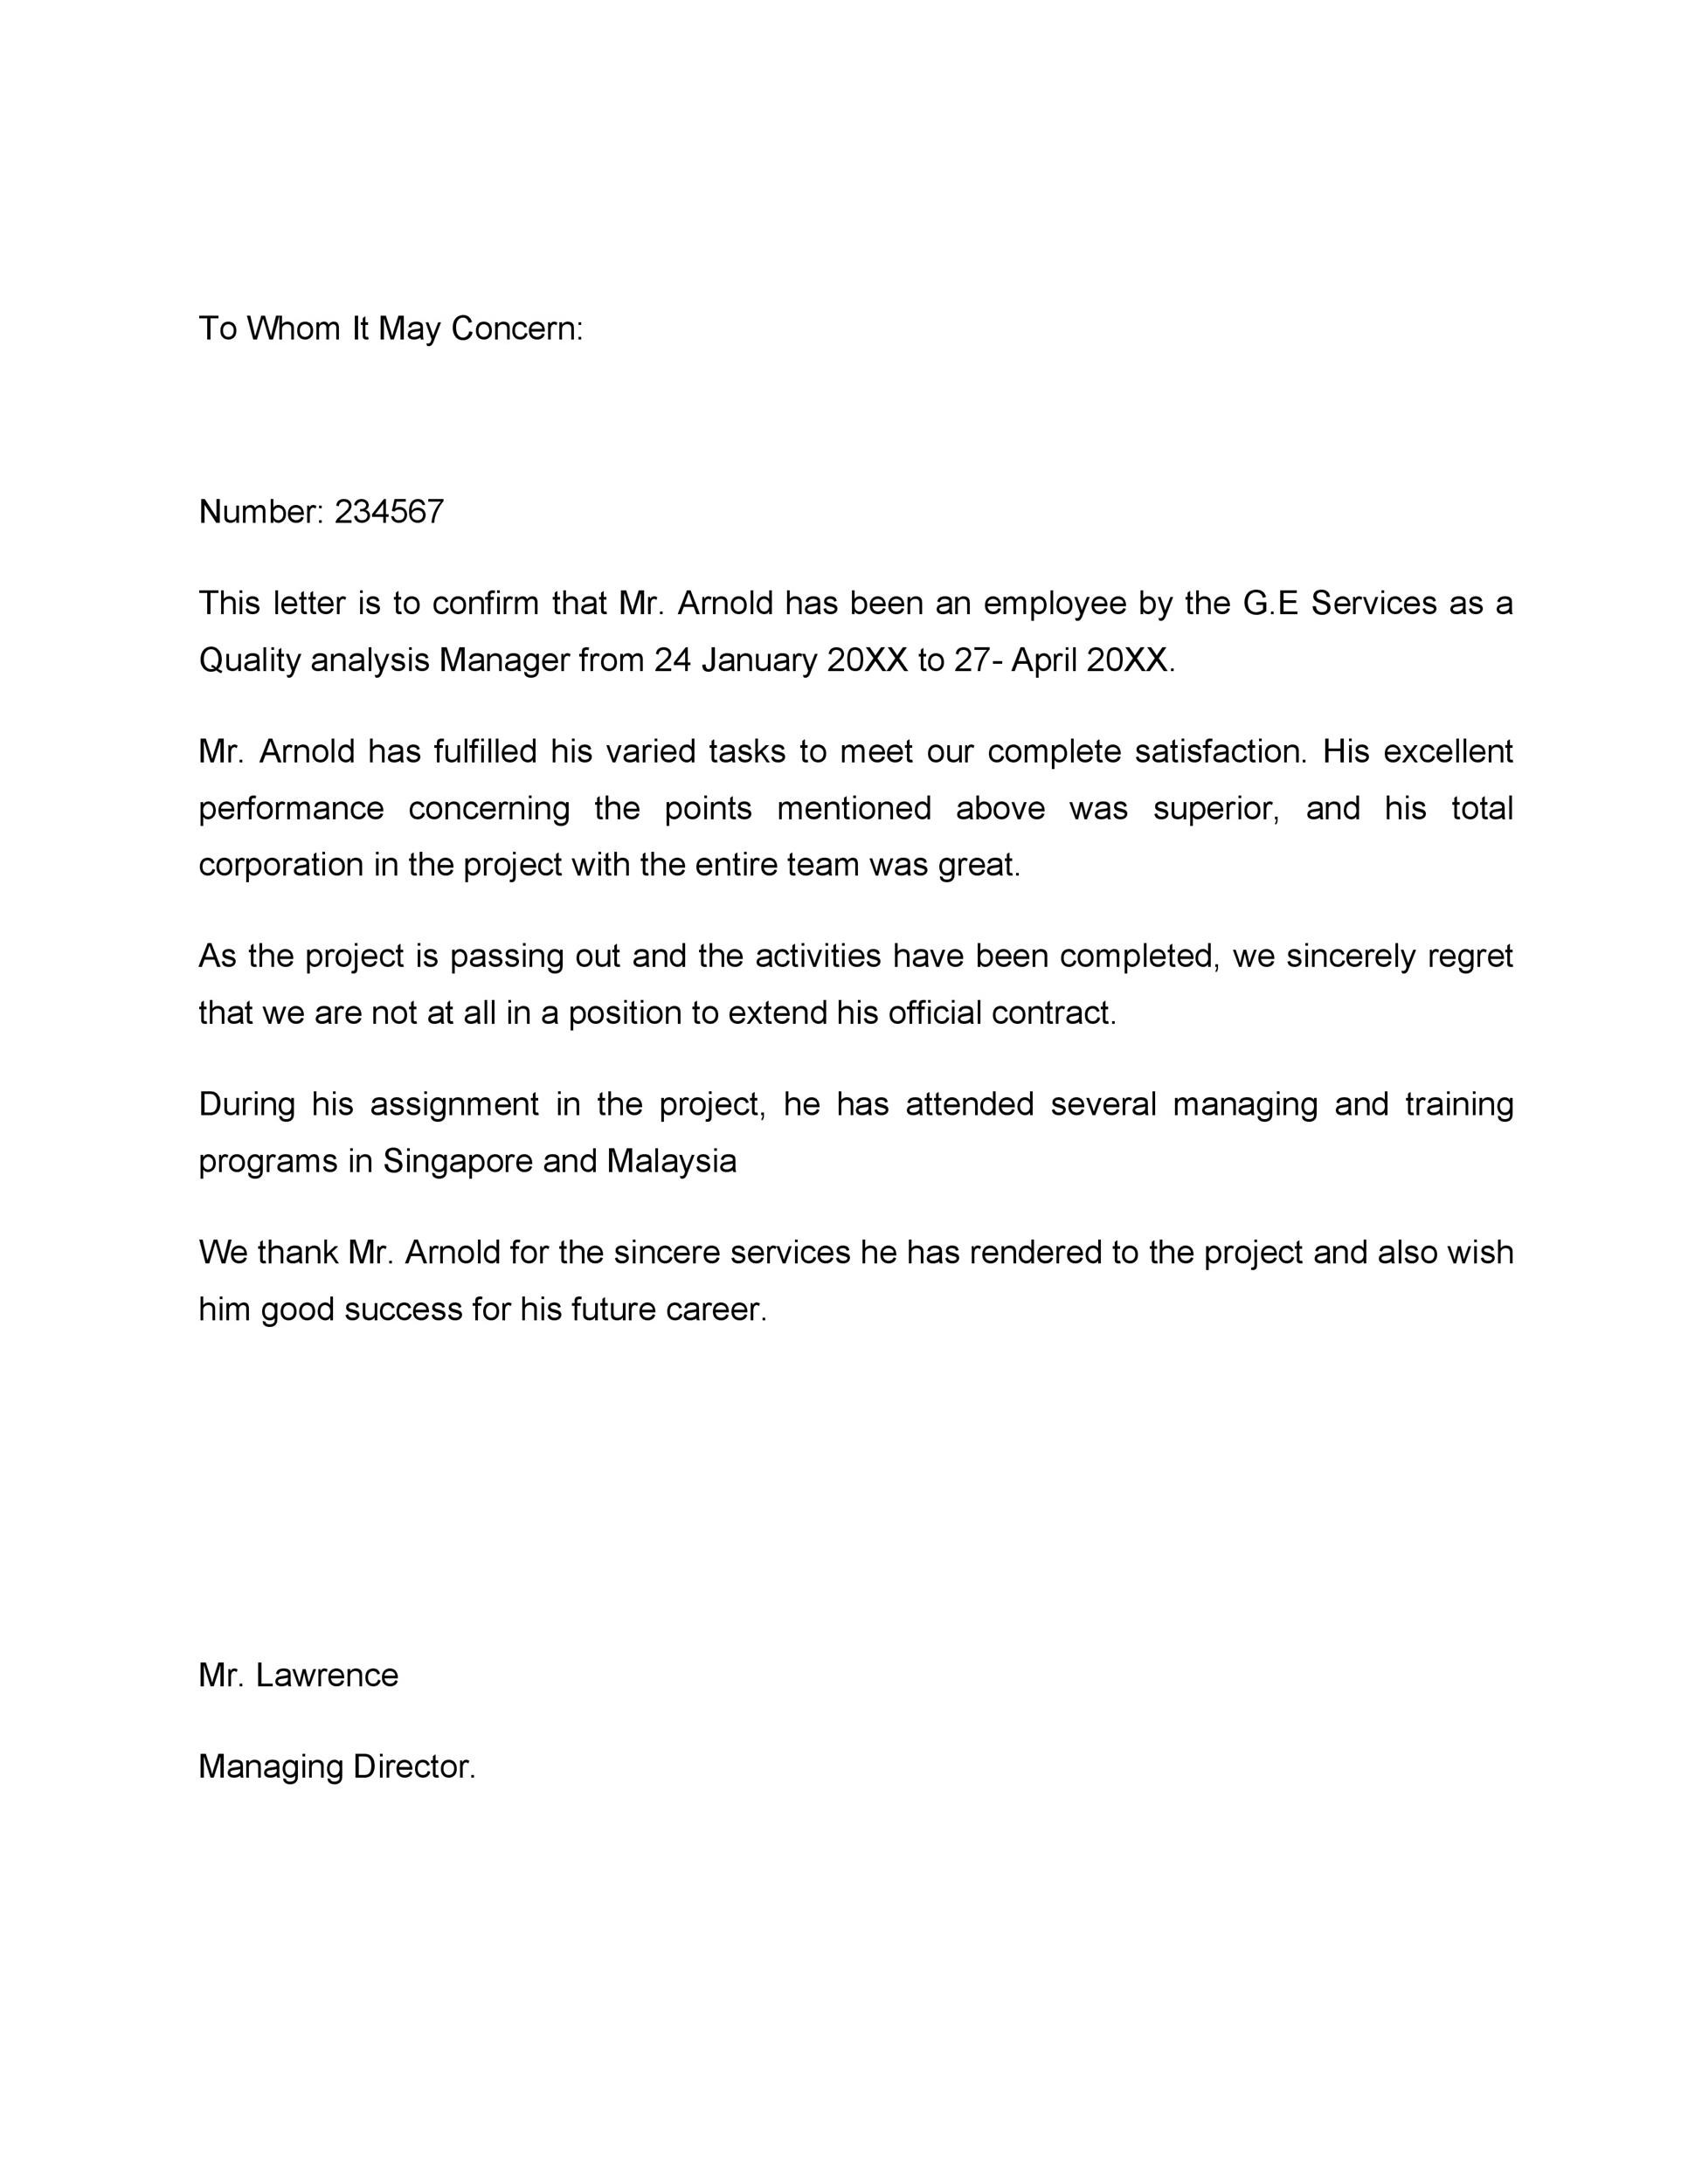 Assignment Letter Employee Background Verification Letter